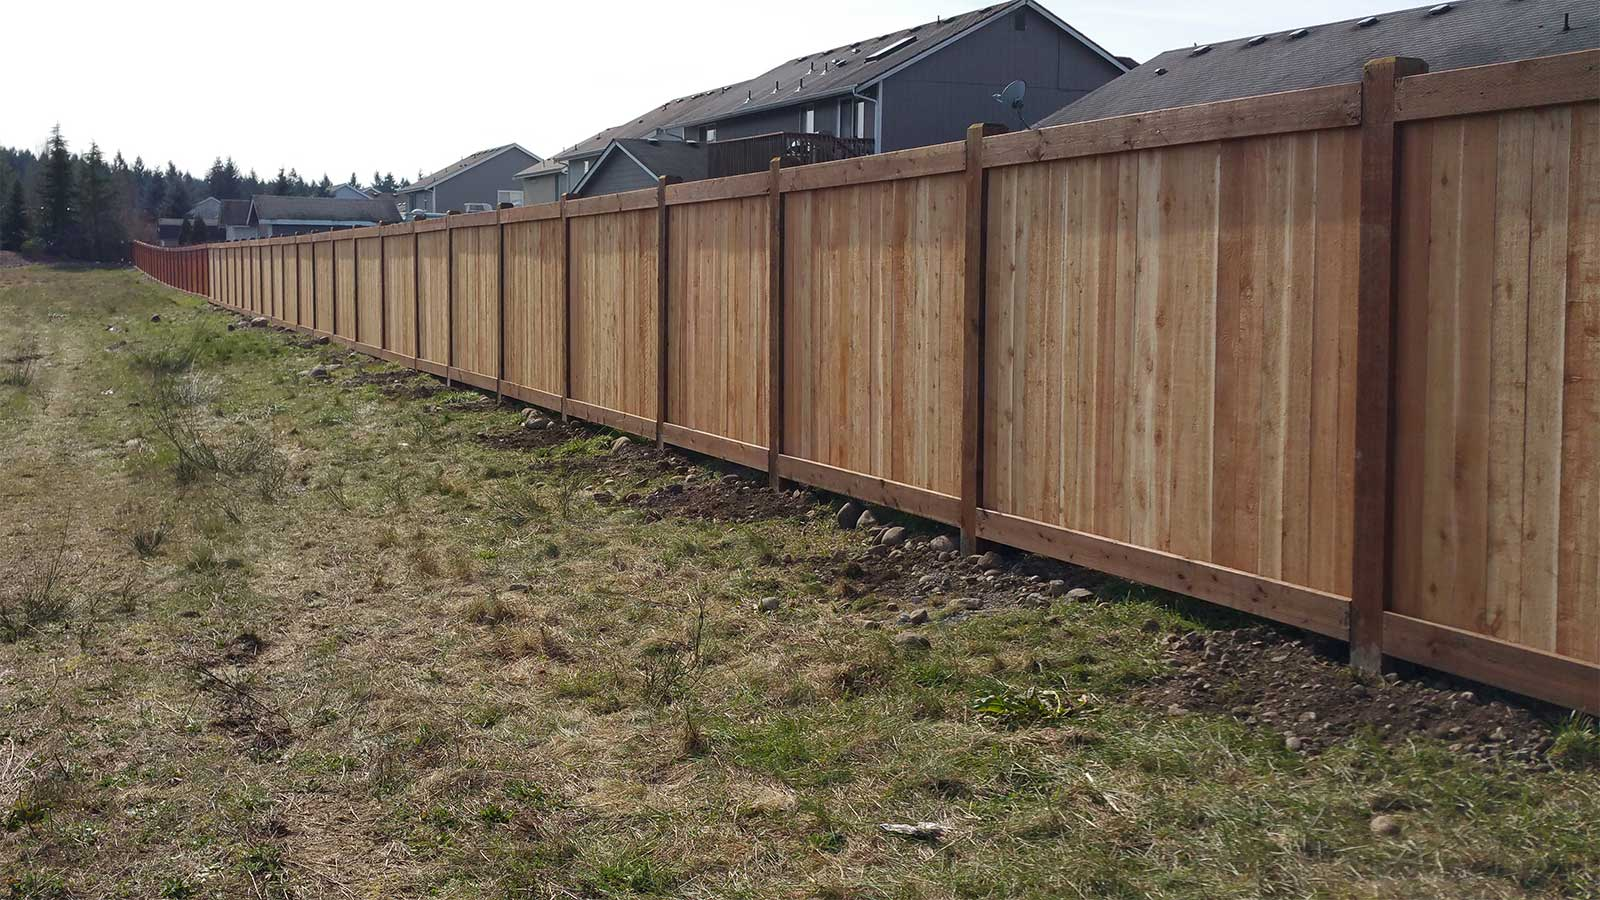 Huge Fence For Spanaway Housing Development Ajb